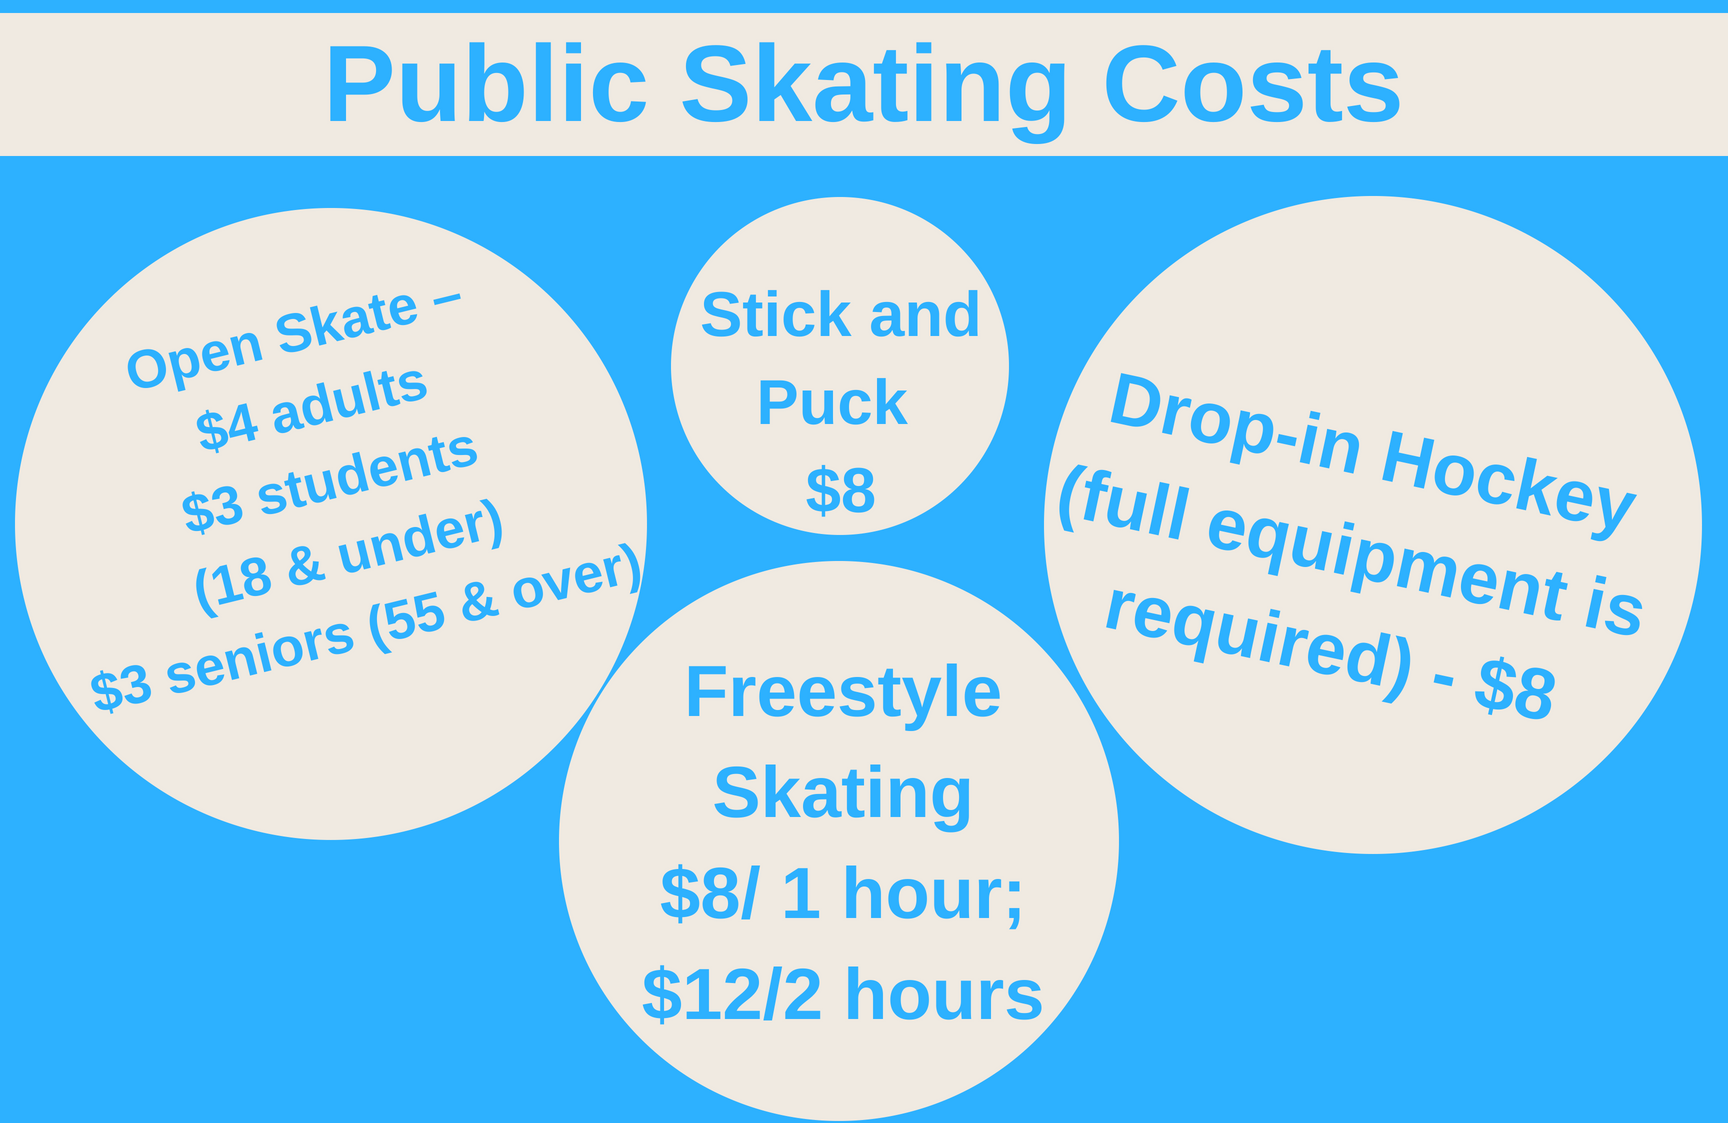 061418 - Skating info update (1) - Copy